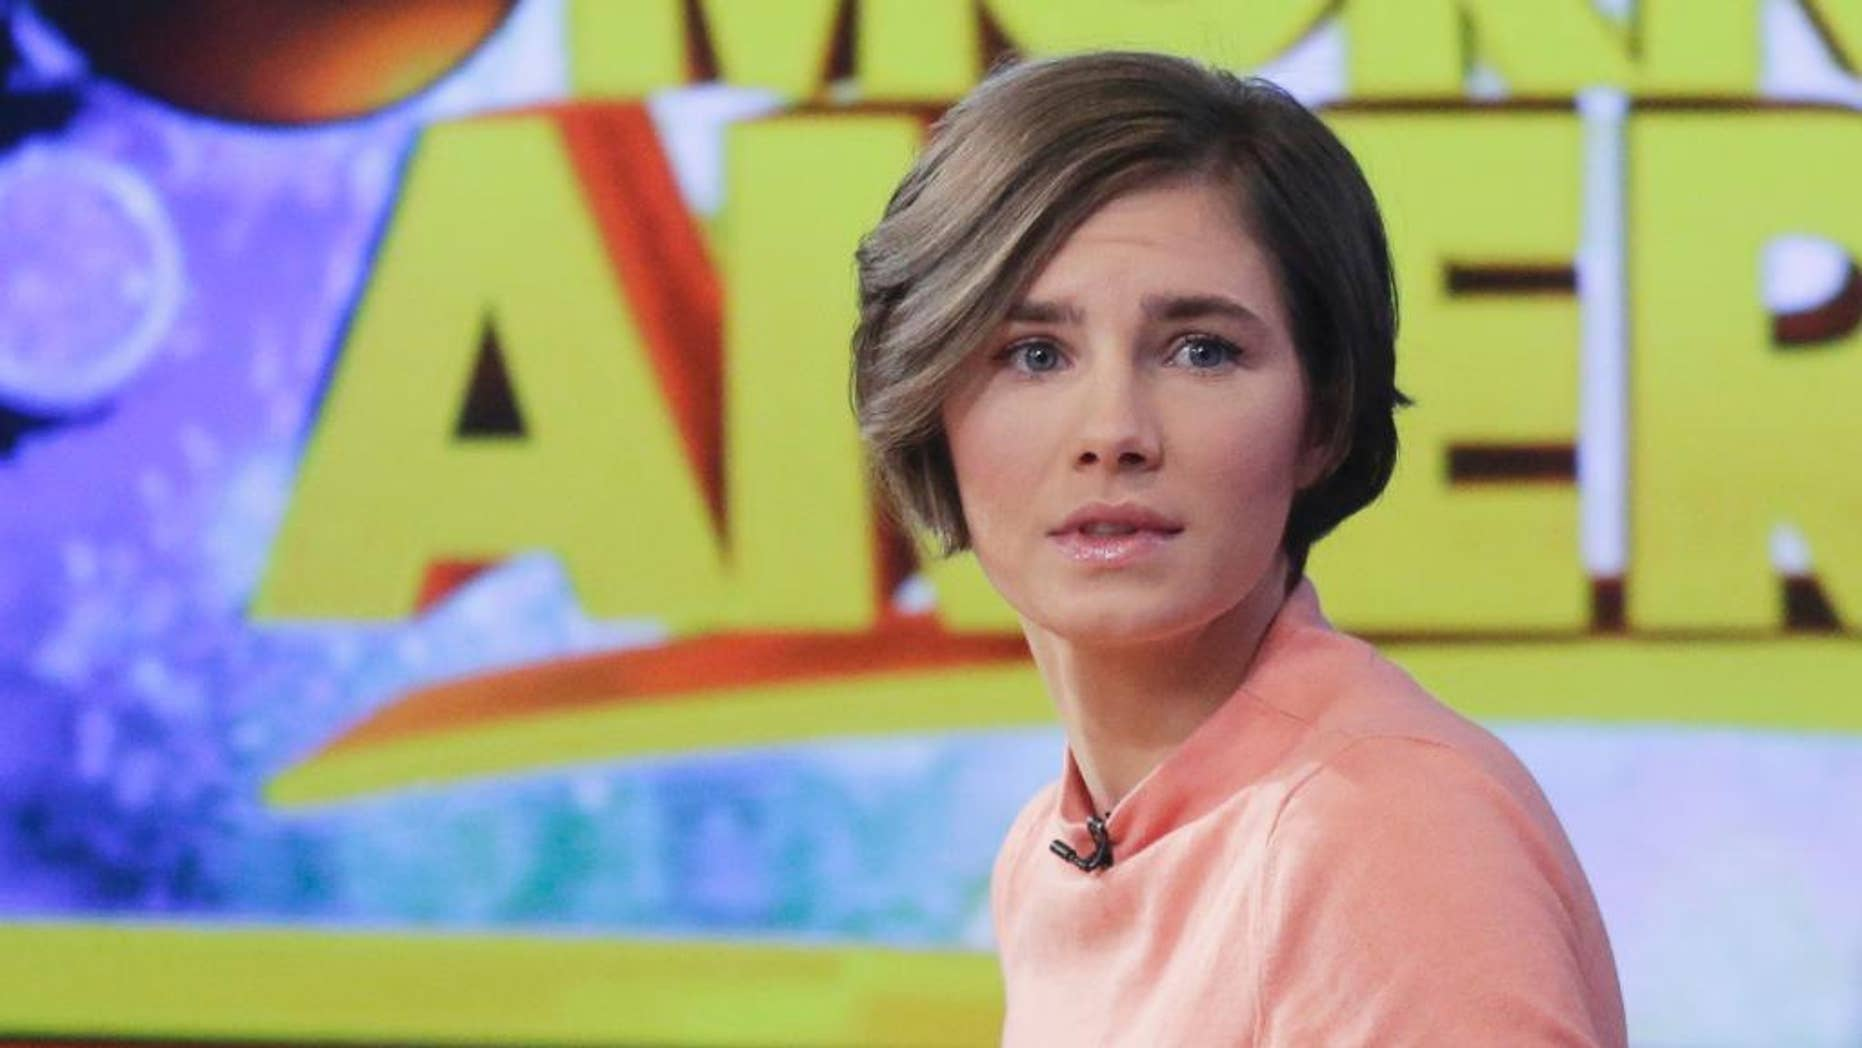 FILE - In this Jan. 31, 2014, file photo, Amanda Knox prepares to leave the set following a television interview in New York. Knox is engaged to Colin Sutherland, a musician who recently moved to Seattle from New York, a person close to the Knox family confirmed for The Associated Press. Knox's murder conviction in the 2007 stabbing of her roommate has been reinstated by an Italian court, but the former college exchange student maintains her innocence and vows she won't willingly go back to Italy. Both Knox and Sutherland are 27. No wedding date had been set. (AP Photo/Mark Lennihan, File)